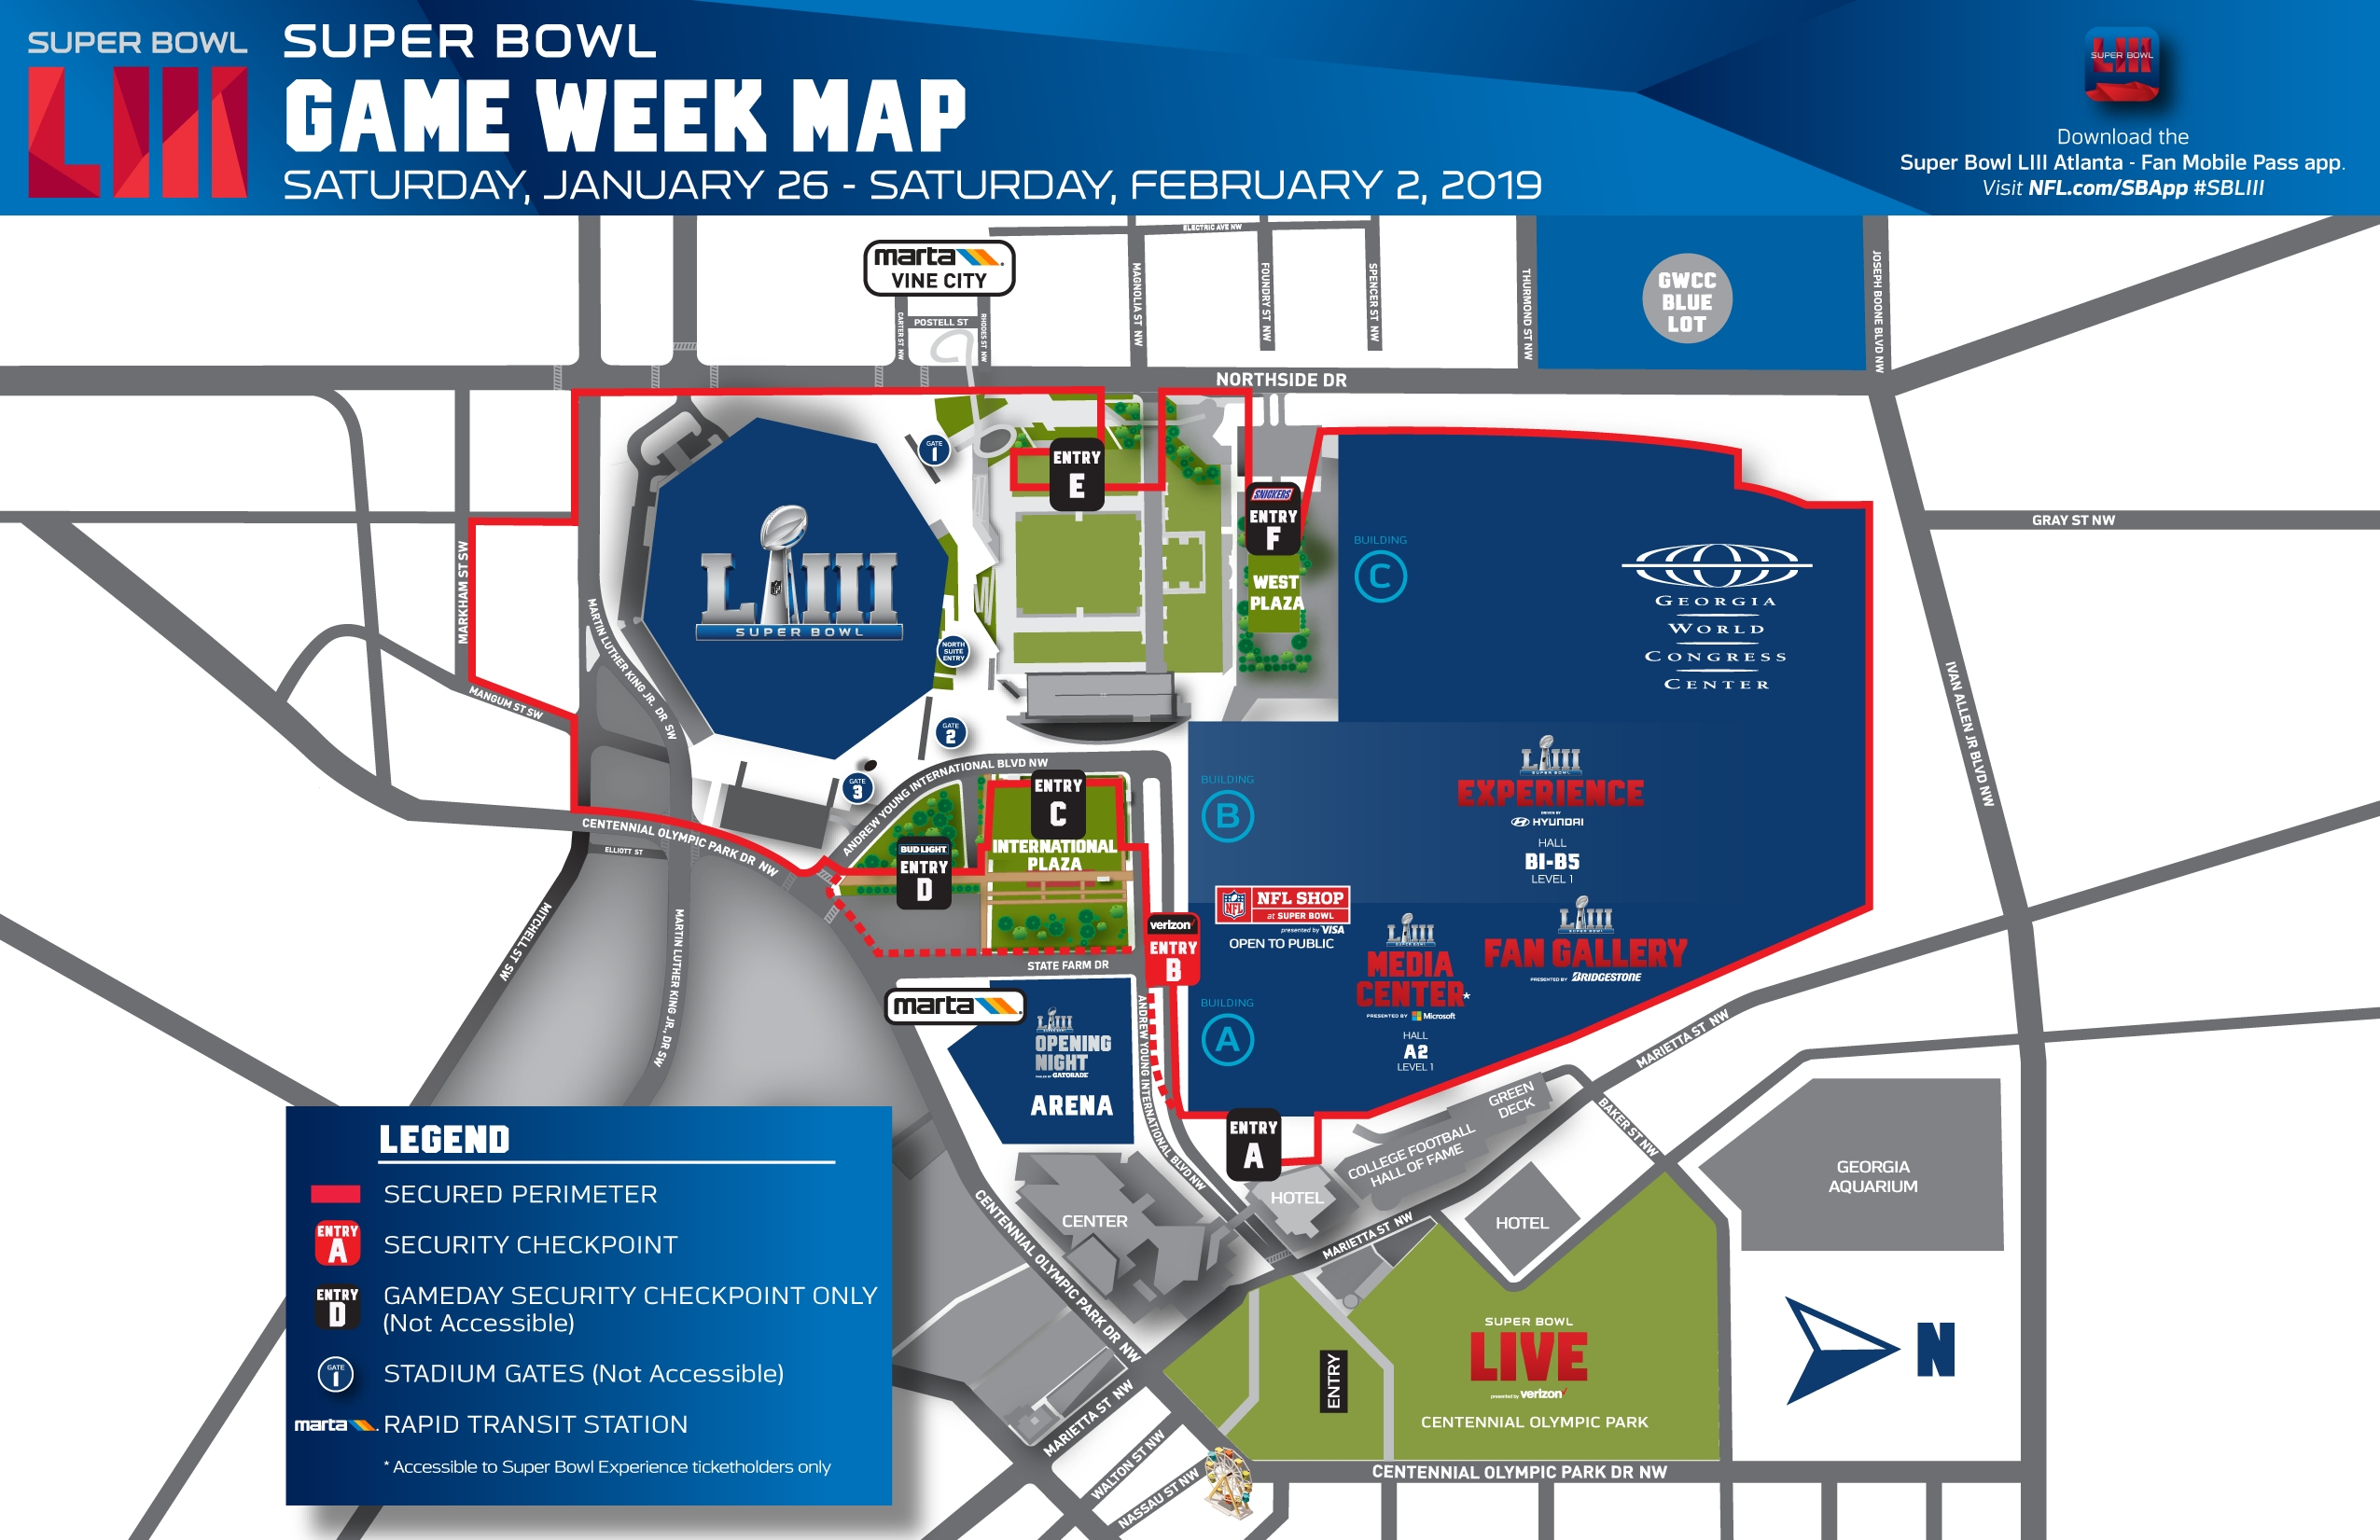 Super Bowl Experience | Nfl | Nfl with Map Of Super Bowl Fans 2019